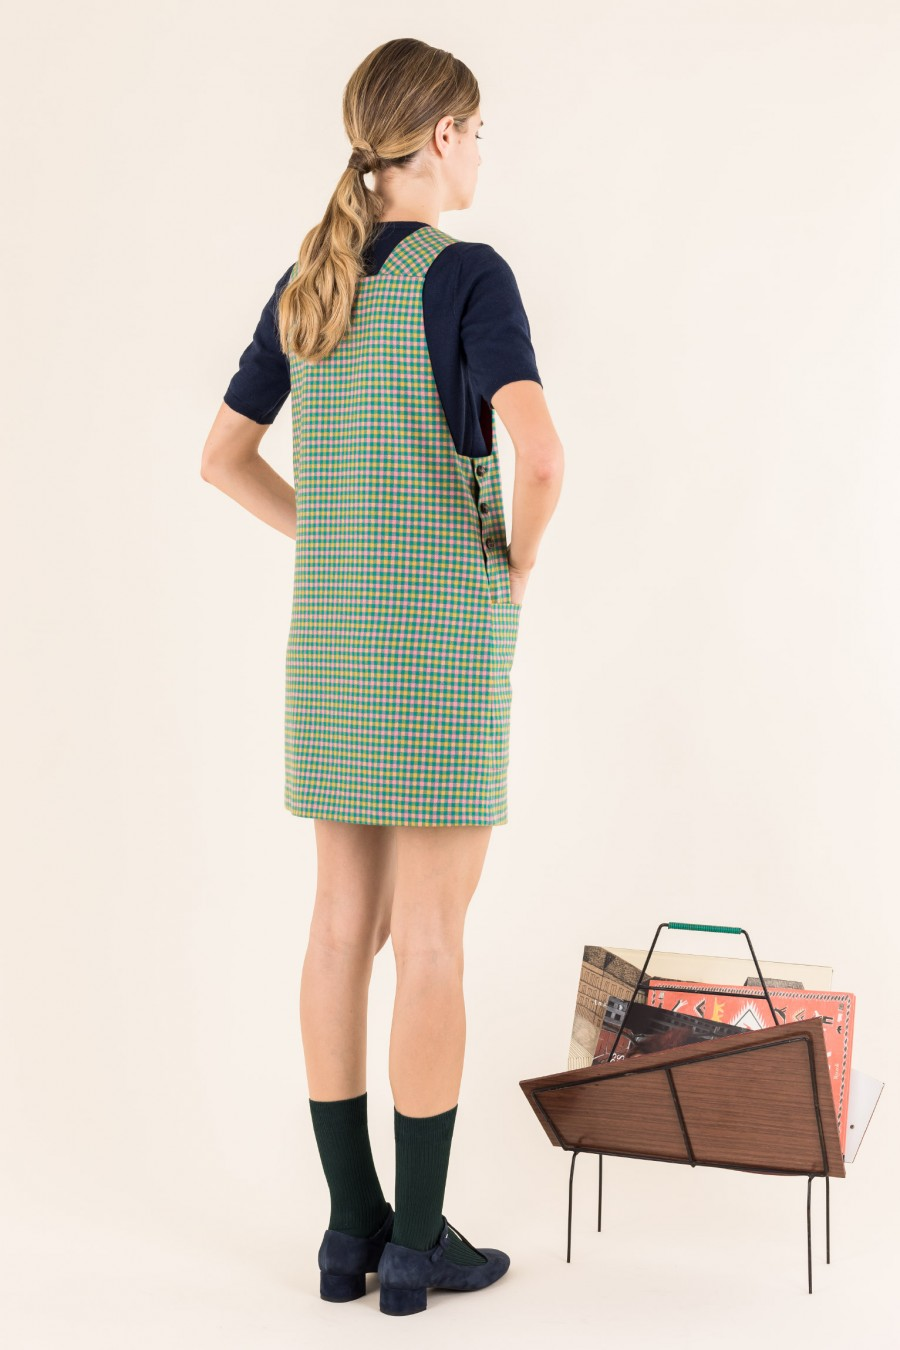 Seventies chequered dress